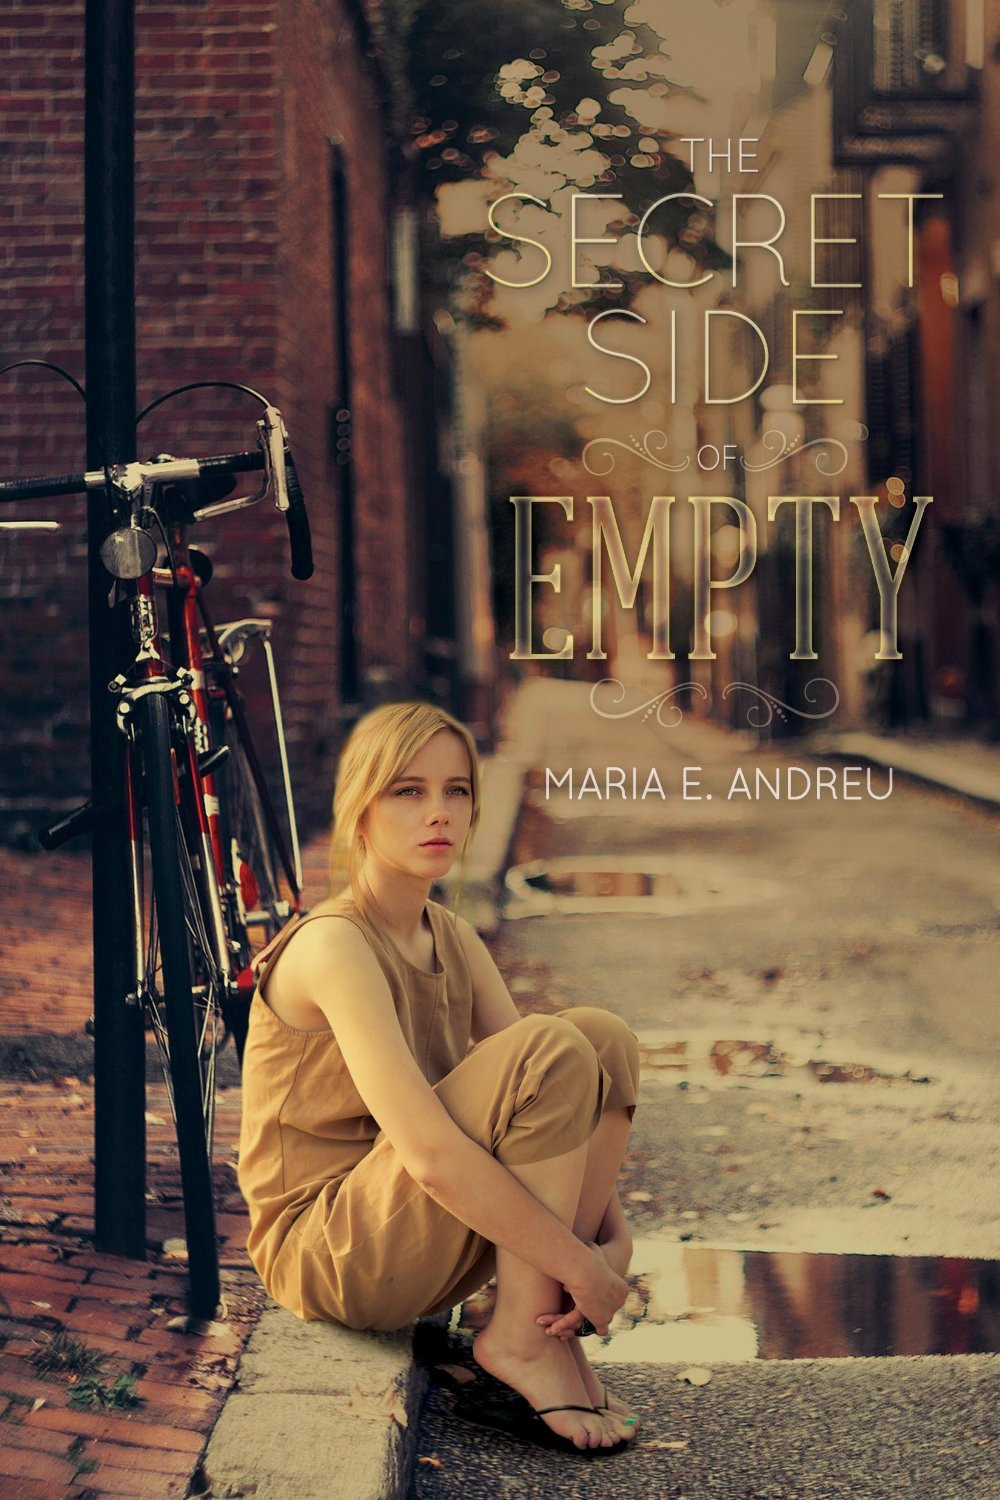 The Secret Side of Empty by Maria E. Andreu